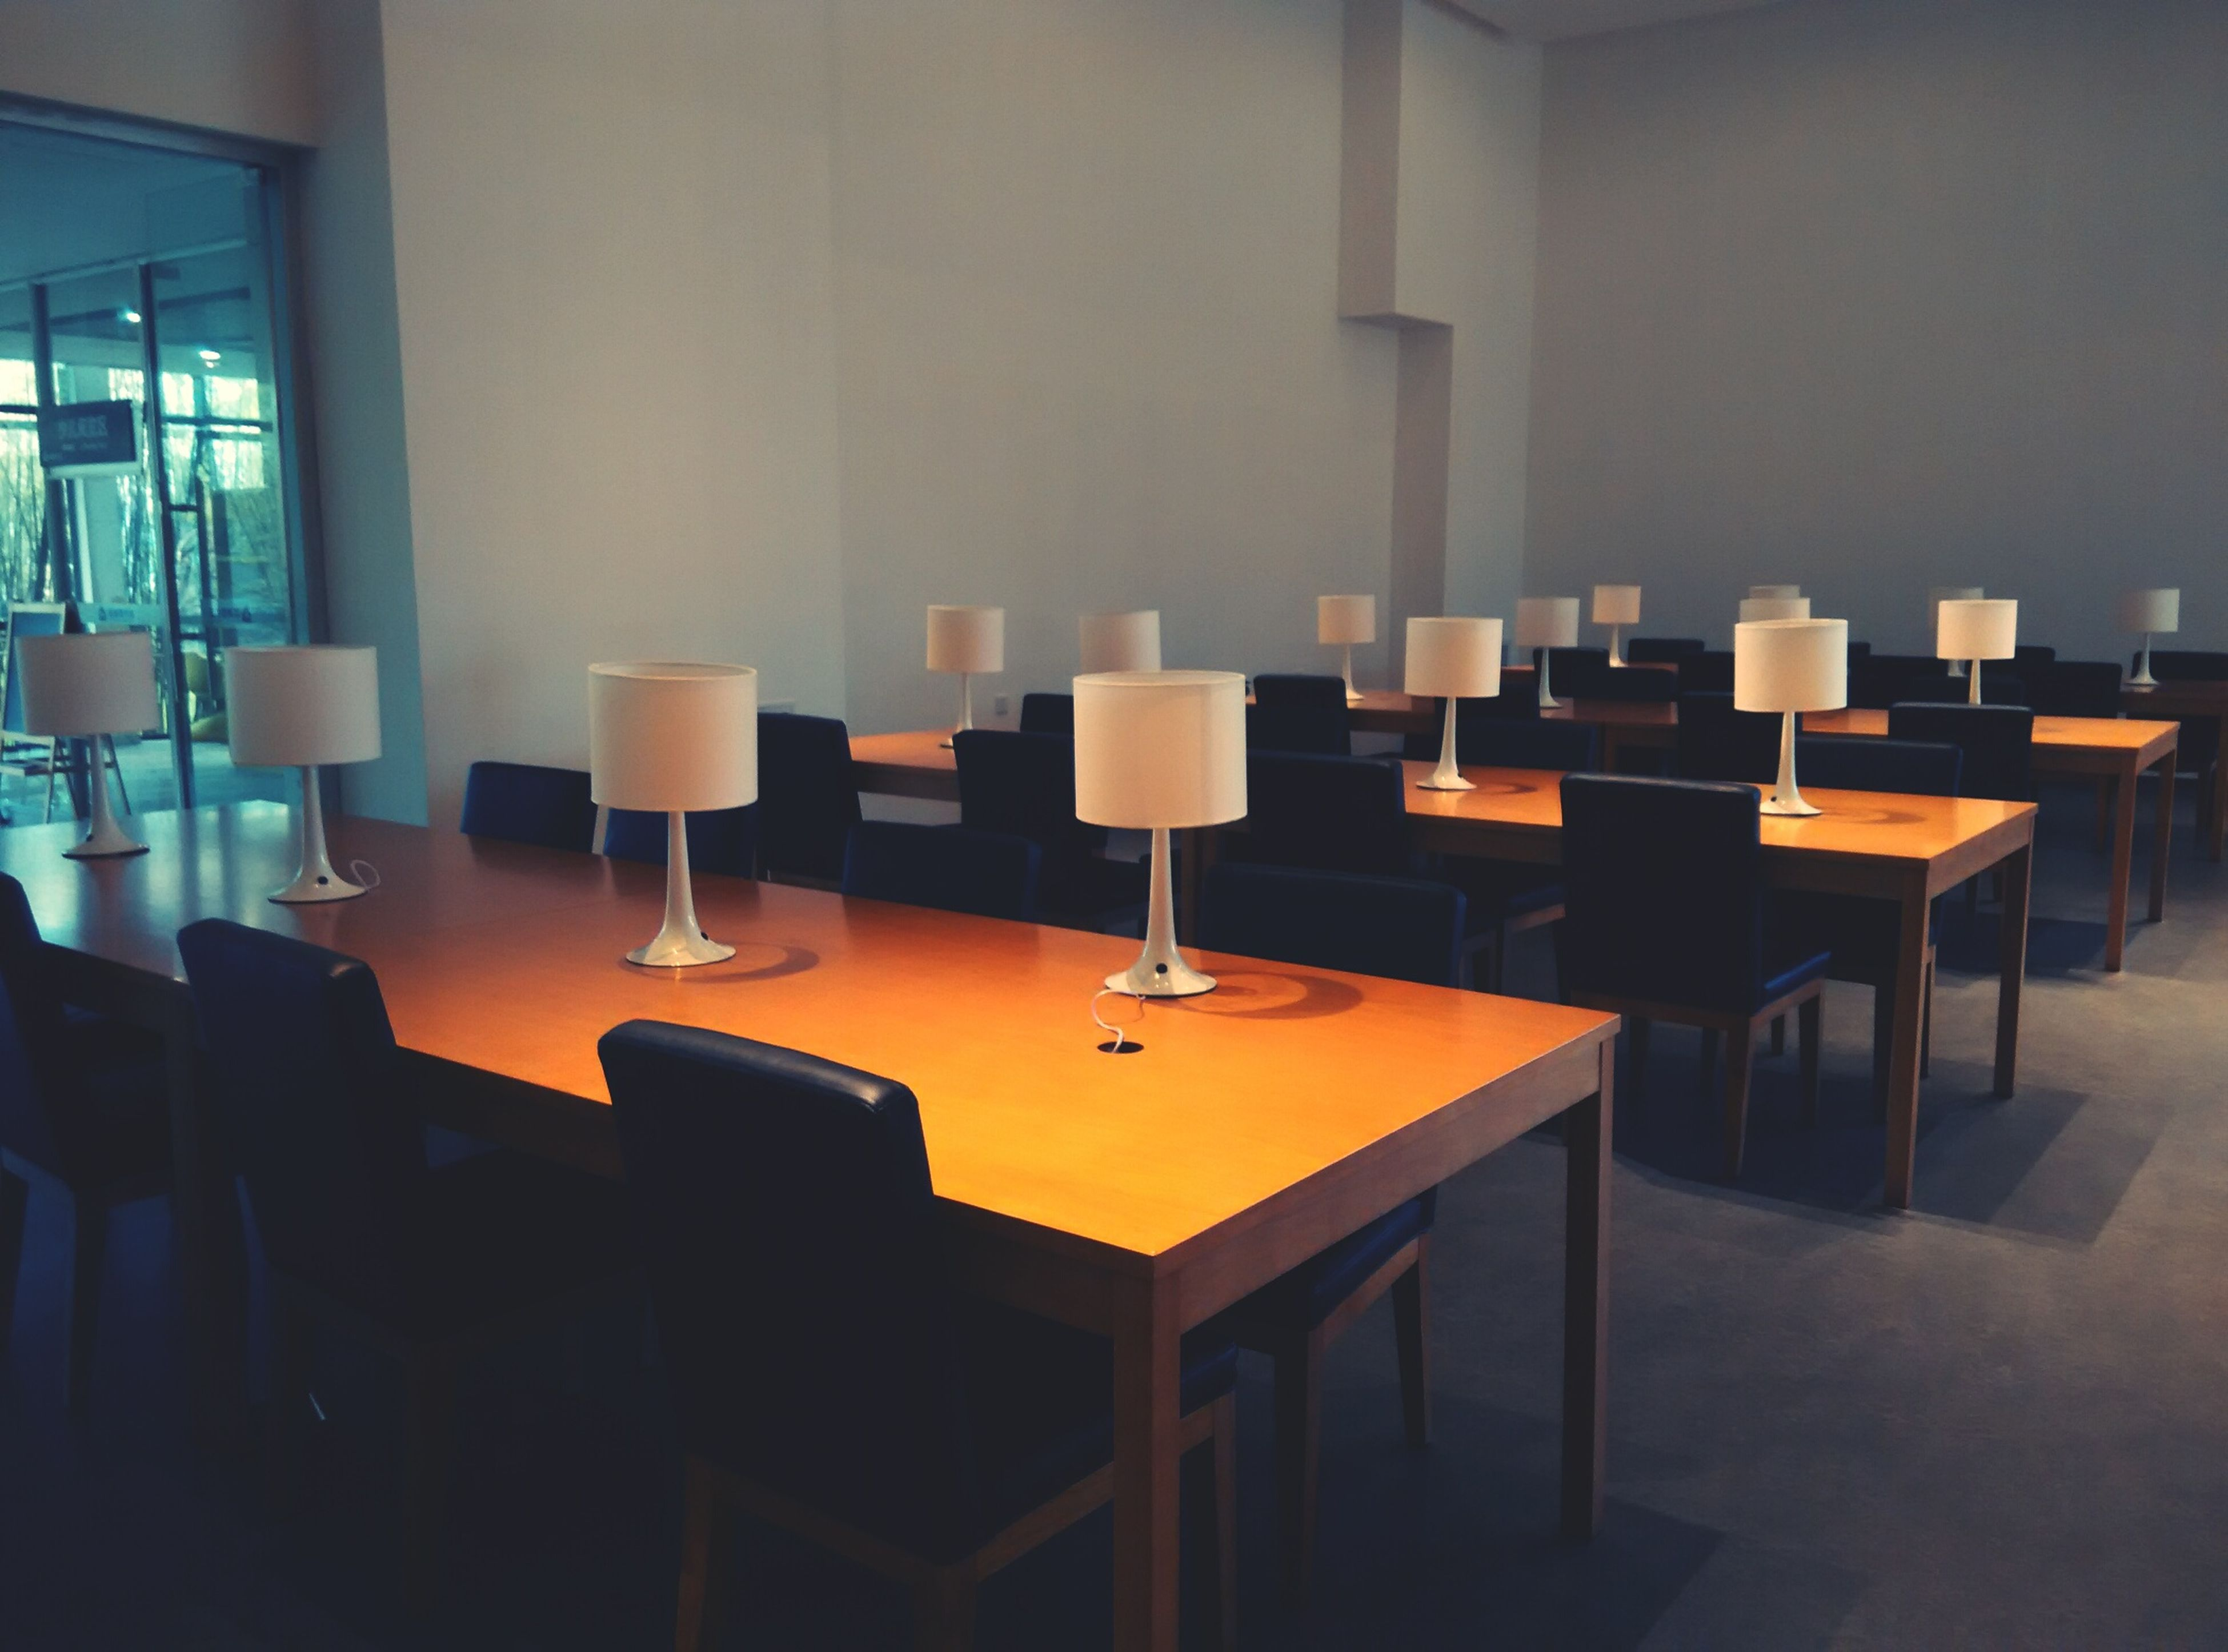 indoors, illuminated, chair, table, absence, empty, home interior, lighting equipment, room, in a row, restaurant, furniture, arrangement, no people, interior, shelf, domestic room, large group of objects, electric lamp, window